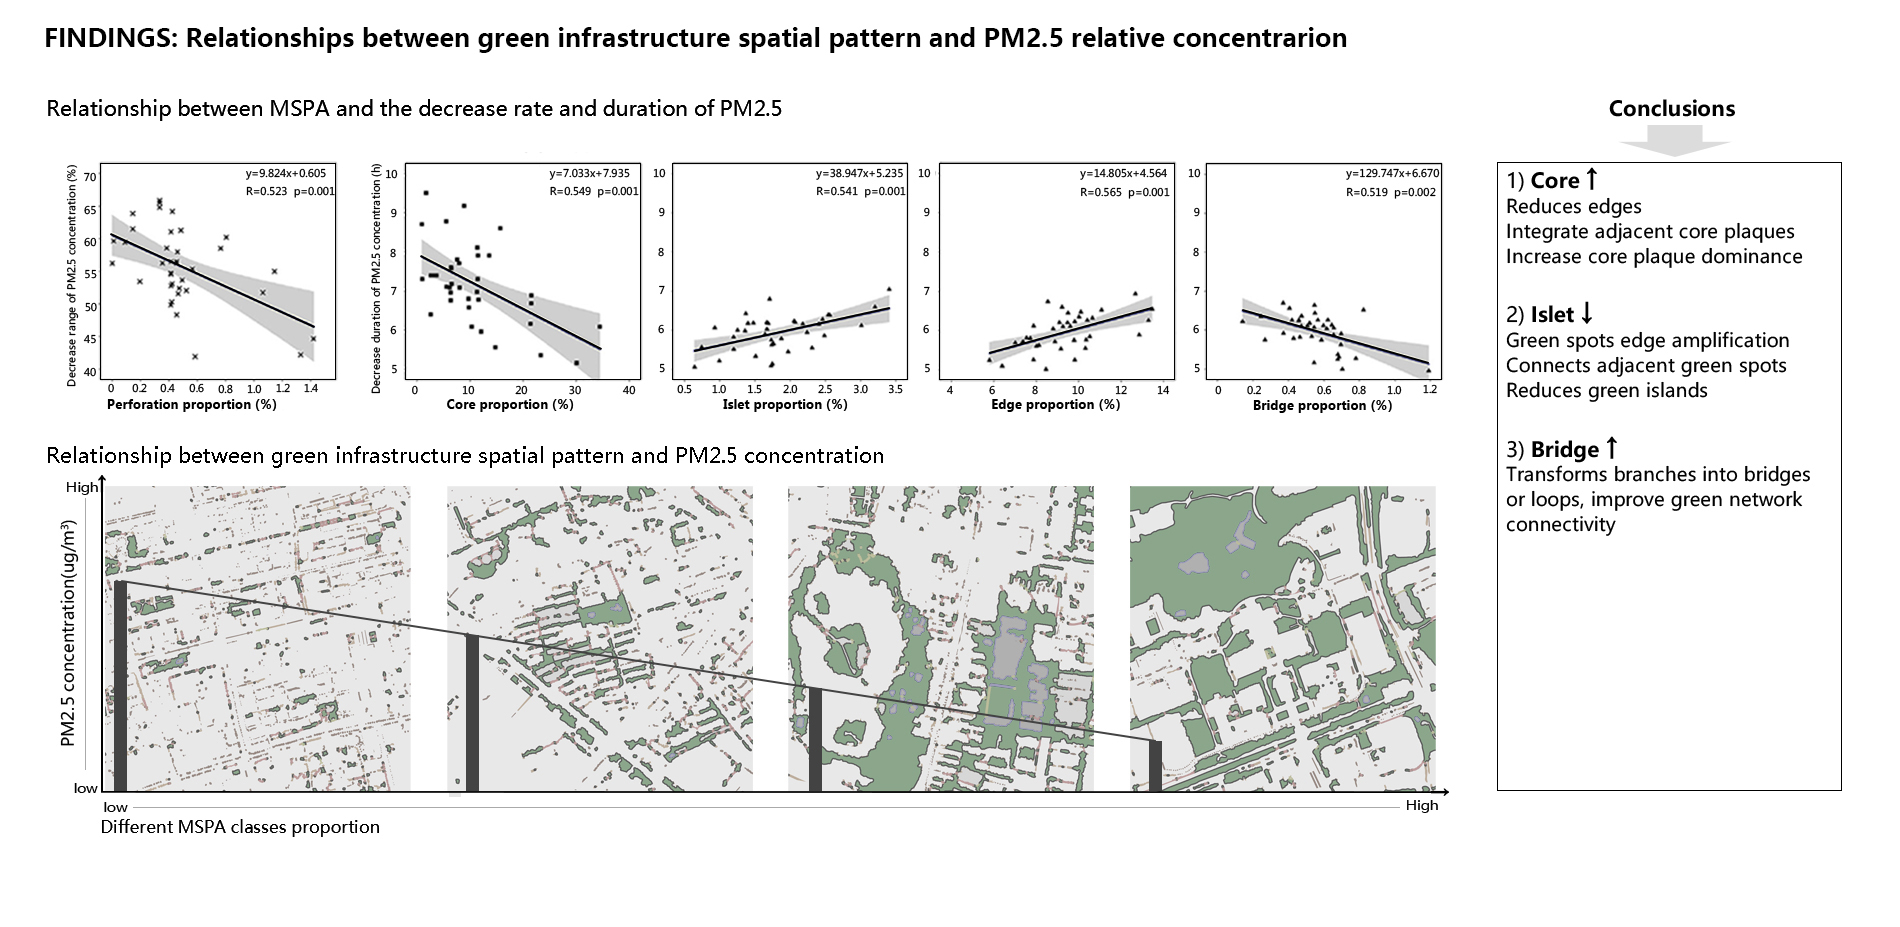 Findings: Relationships between Green infrastructure spatial pattern and PM2.5 relative concentration